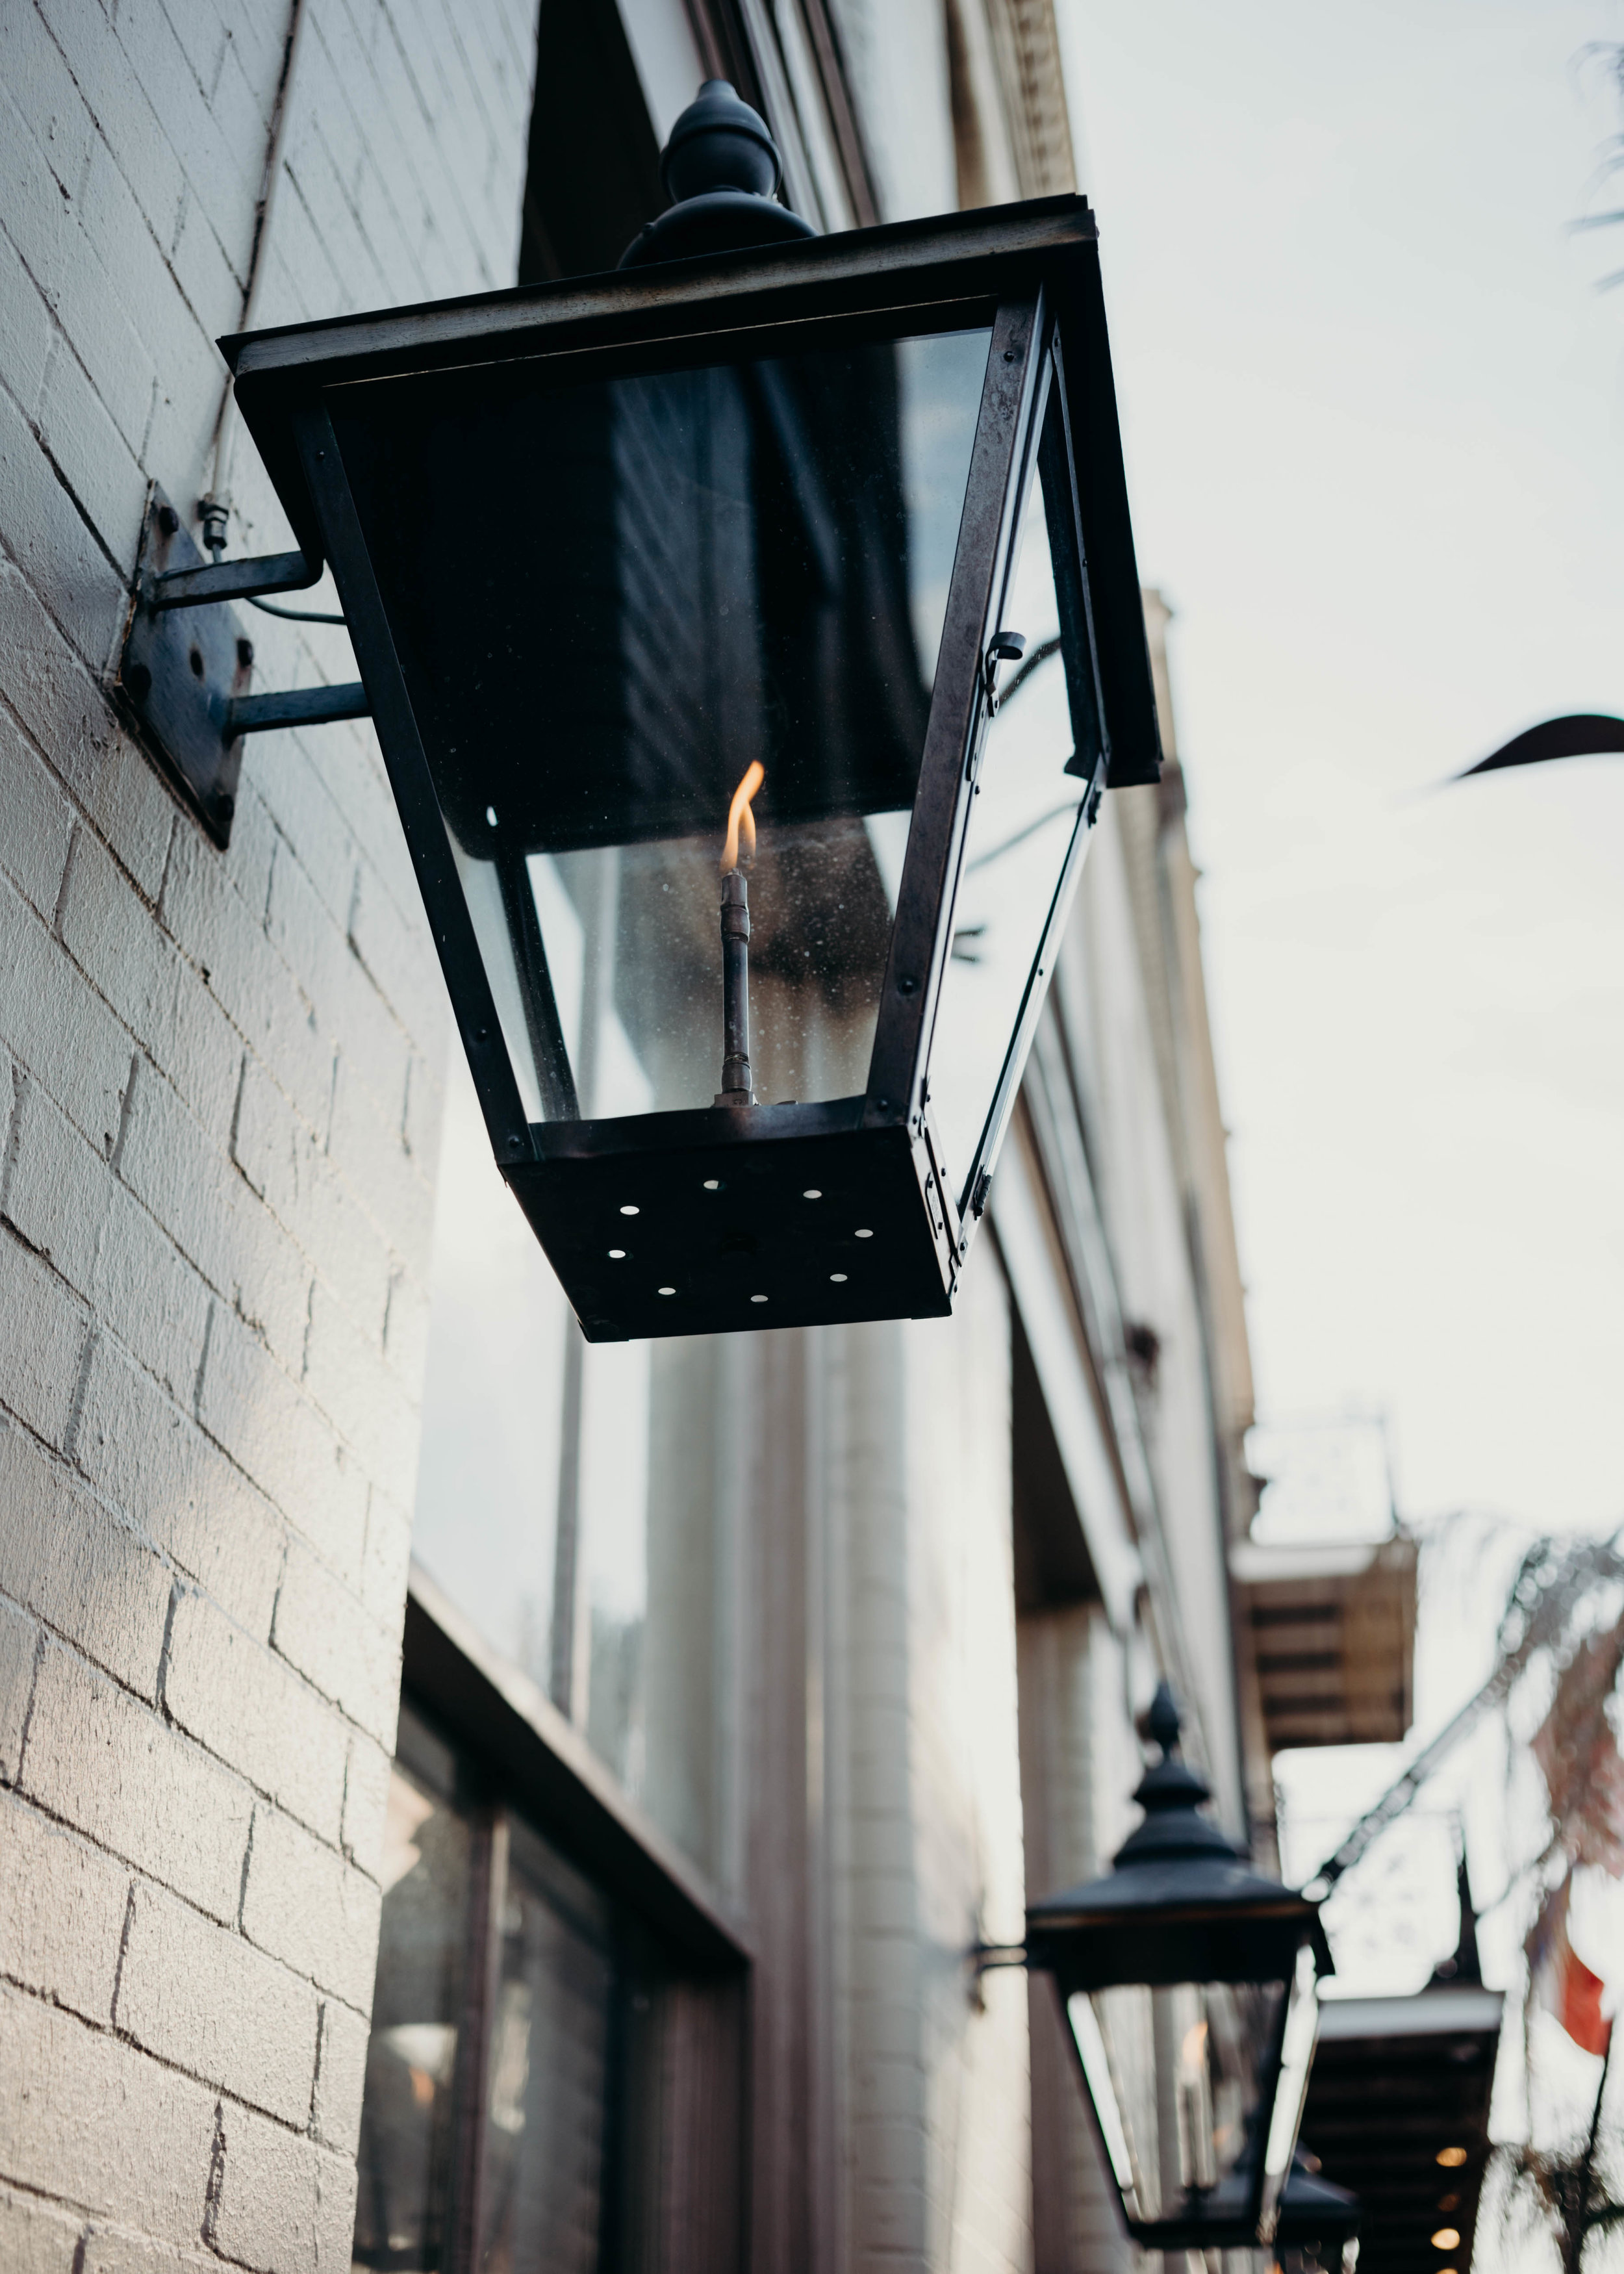 The French Quarter has lost none of its charm. - Lit by gas lamps and surrounded by ornate steel balconies, the iconic neighborhood is easy to fall in love with.